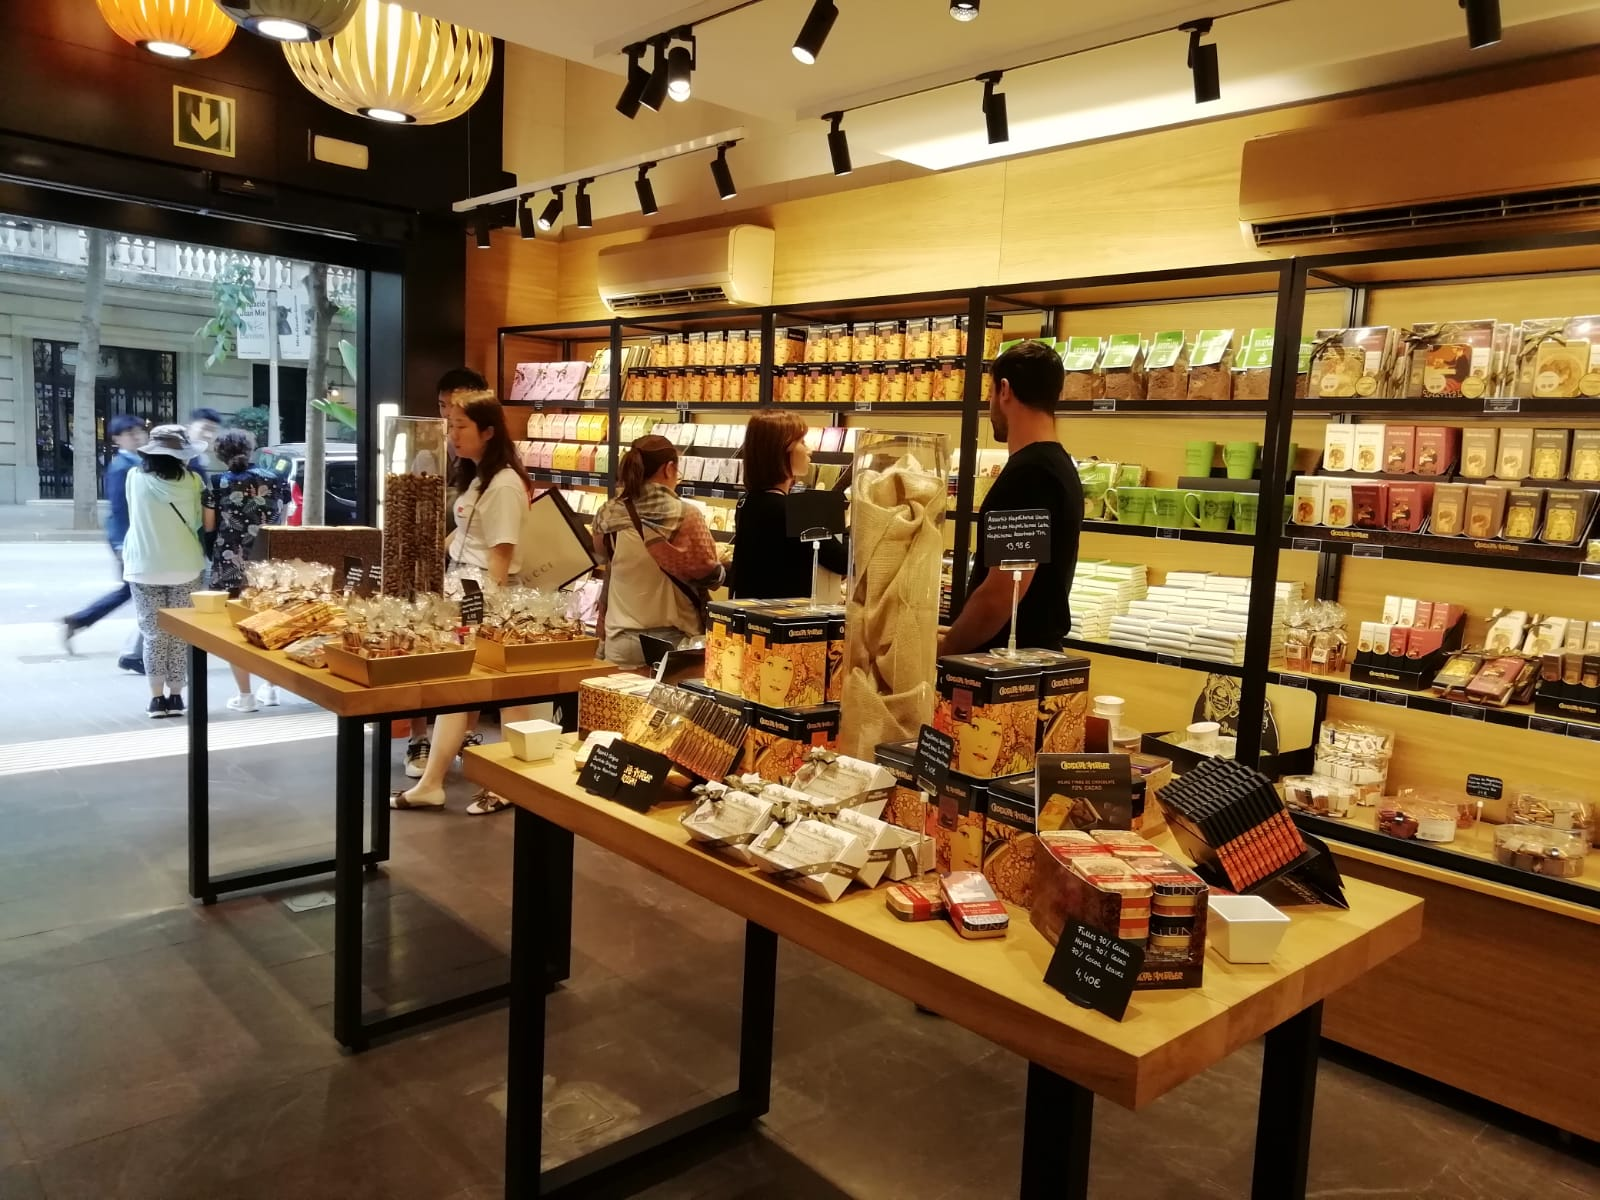 The new Chocolate Amatller shop in the heart of Barcelona